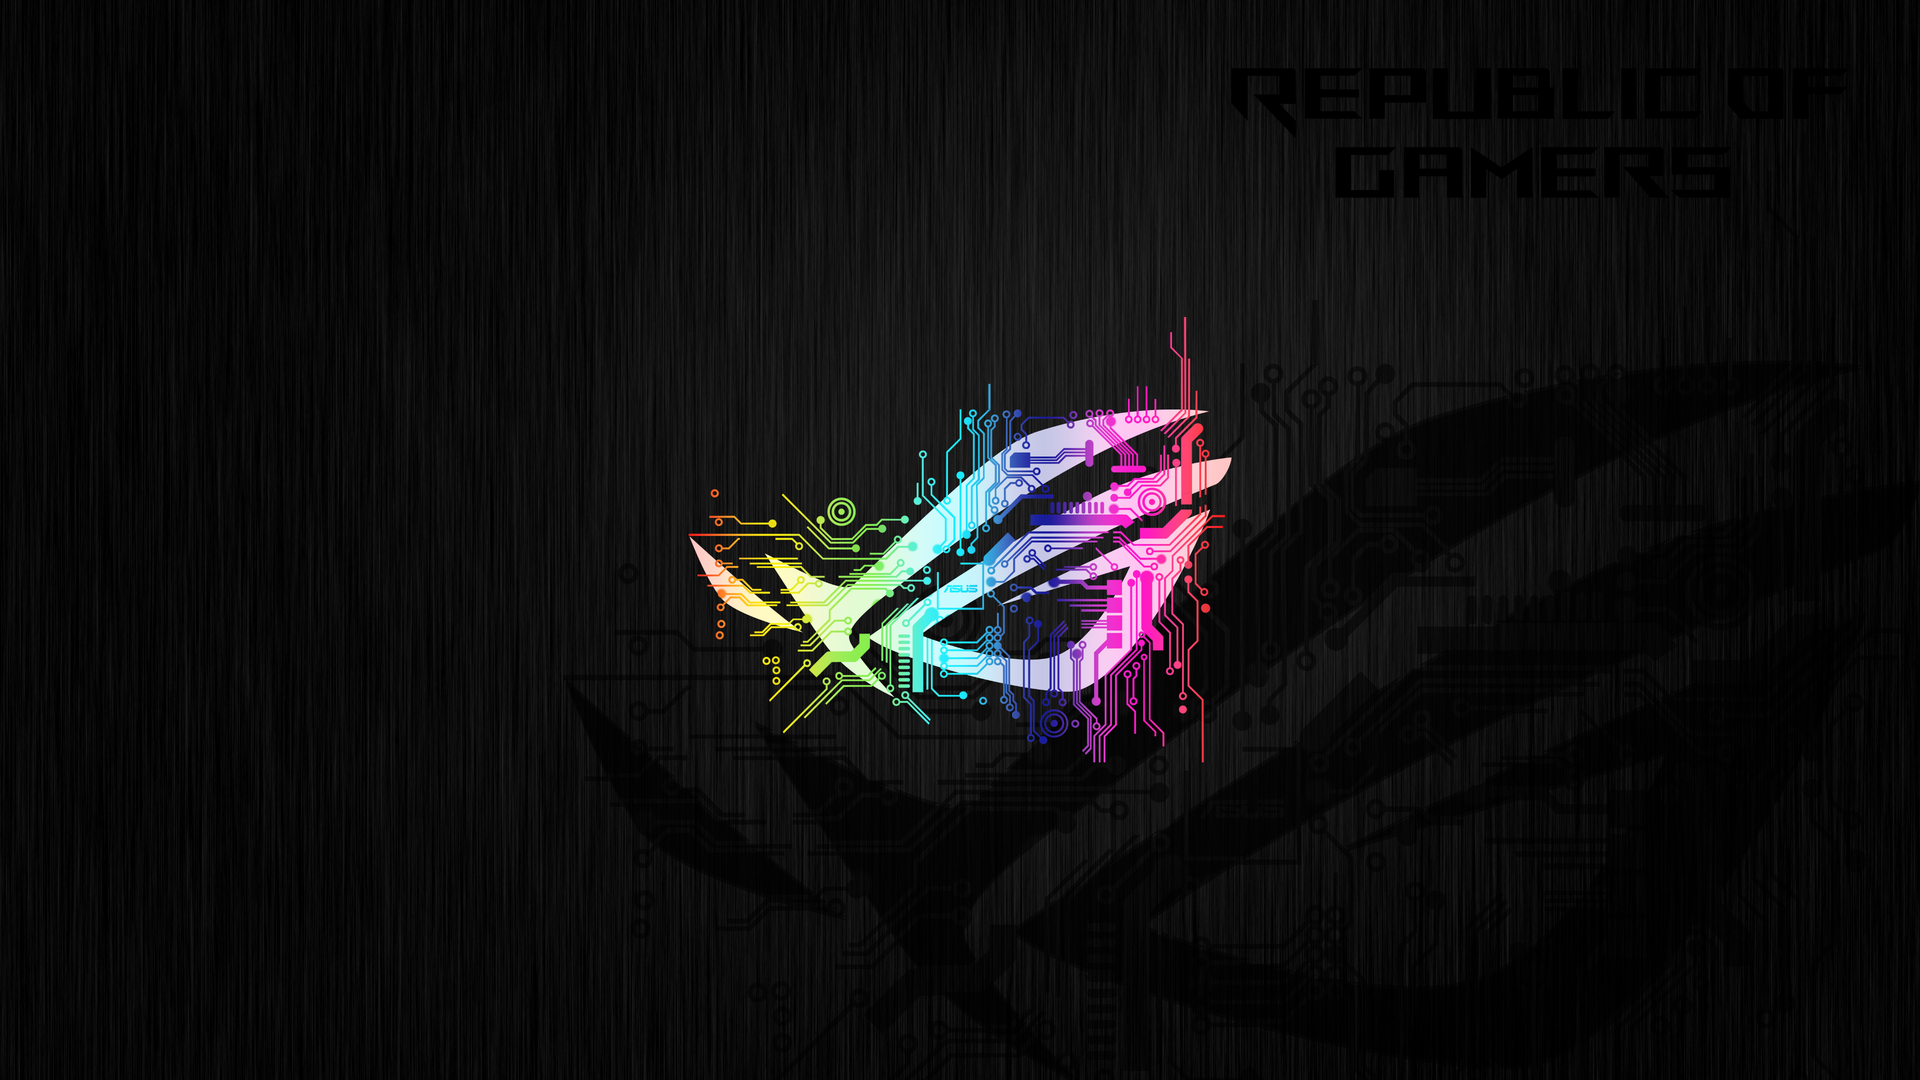 1920x1080 Republic Of Gamers Abstract Logo 4k Laptop Full Hd